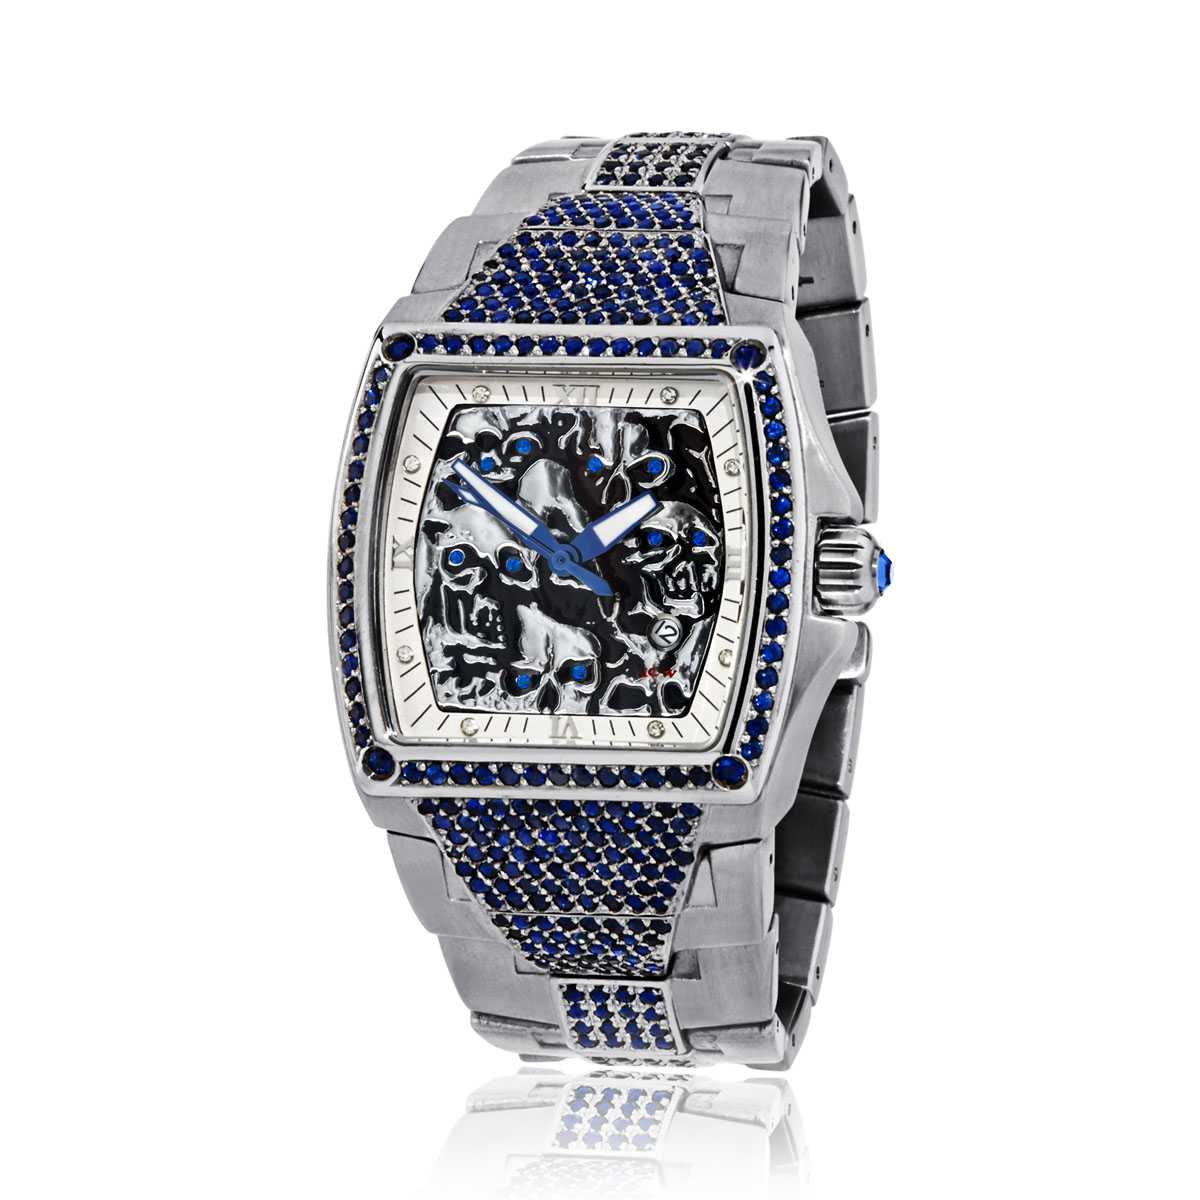 HCW806-SS-SAP Lost Skulls Watch in Stainless Steel with 4.5 ct Blue Sapphires, designed by Steve Soffa